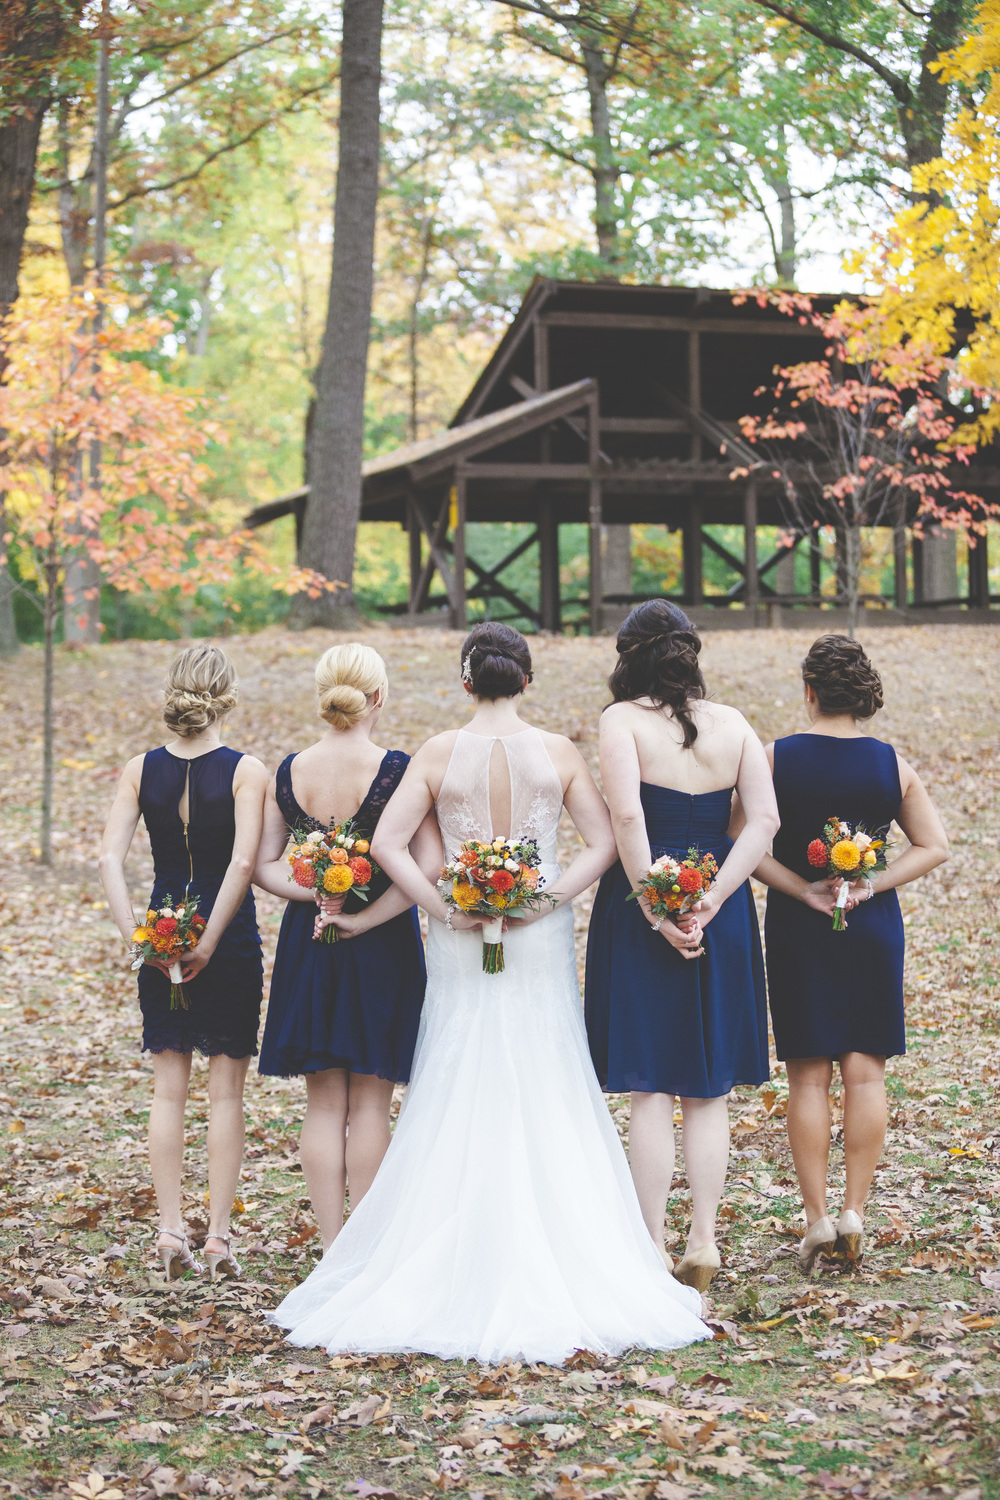 A great bridesmaids photo showing off the unique dresses.